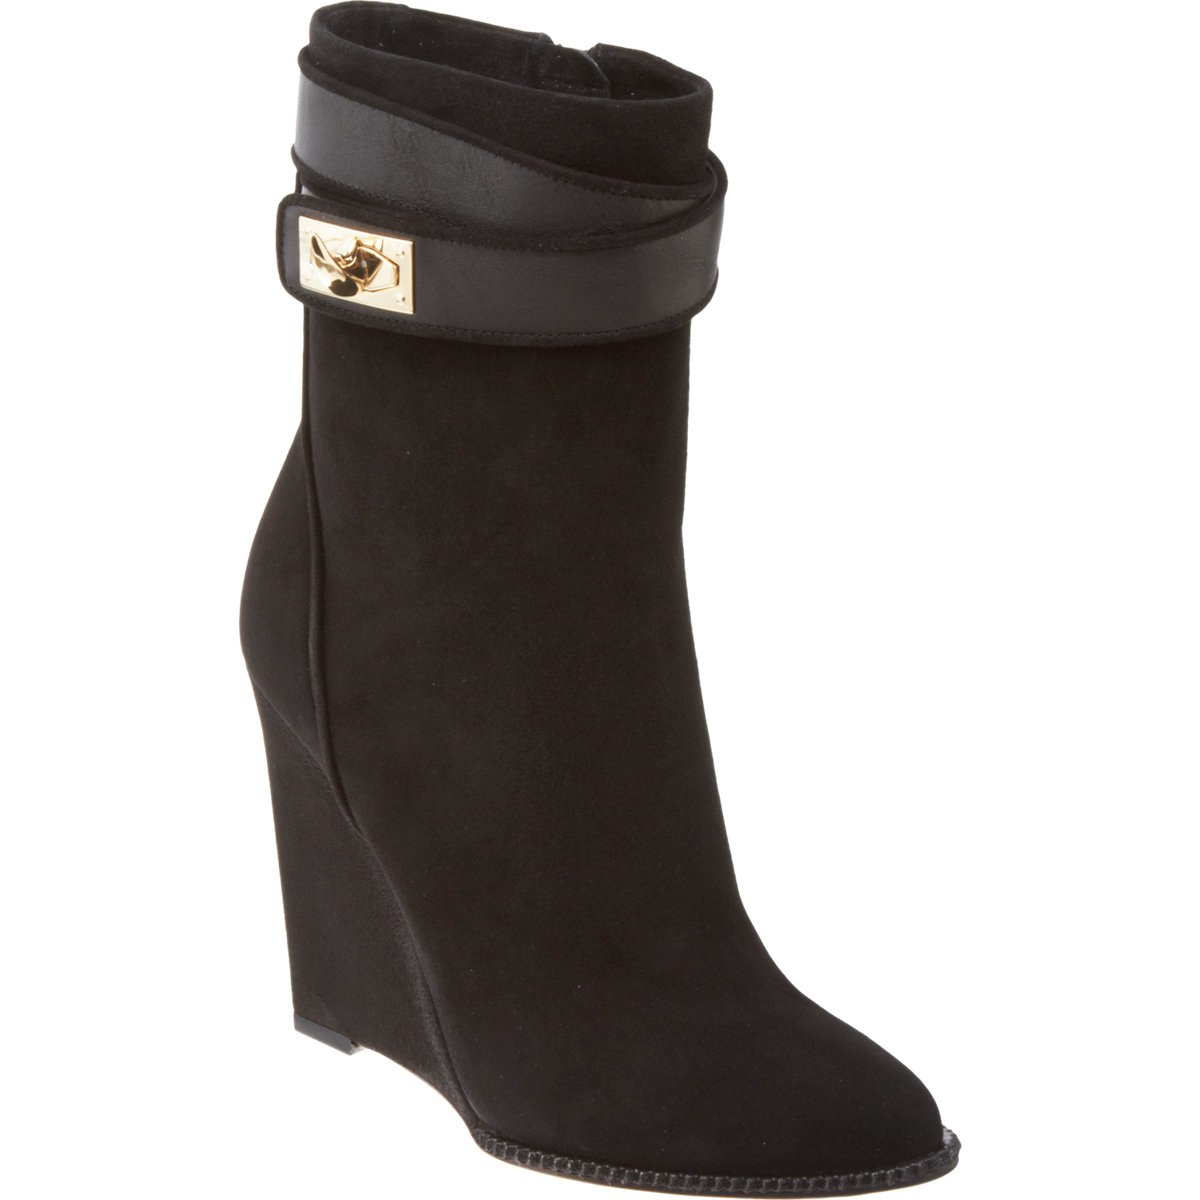 givenchy shark tooth wedge ankle boot in black lyst